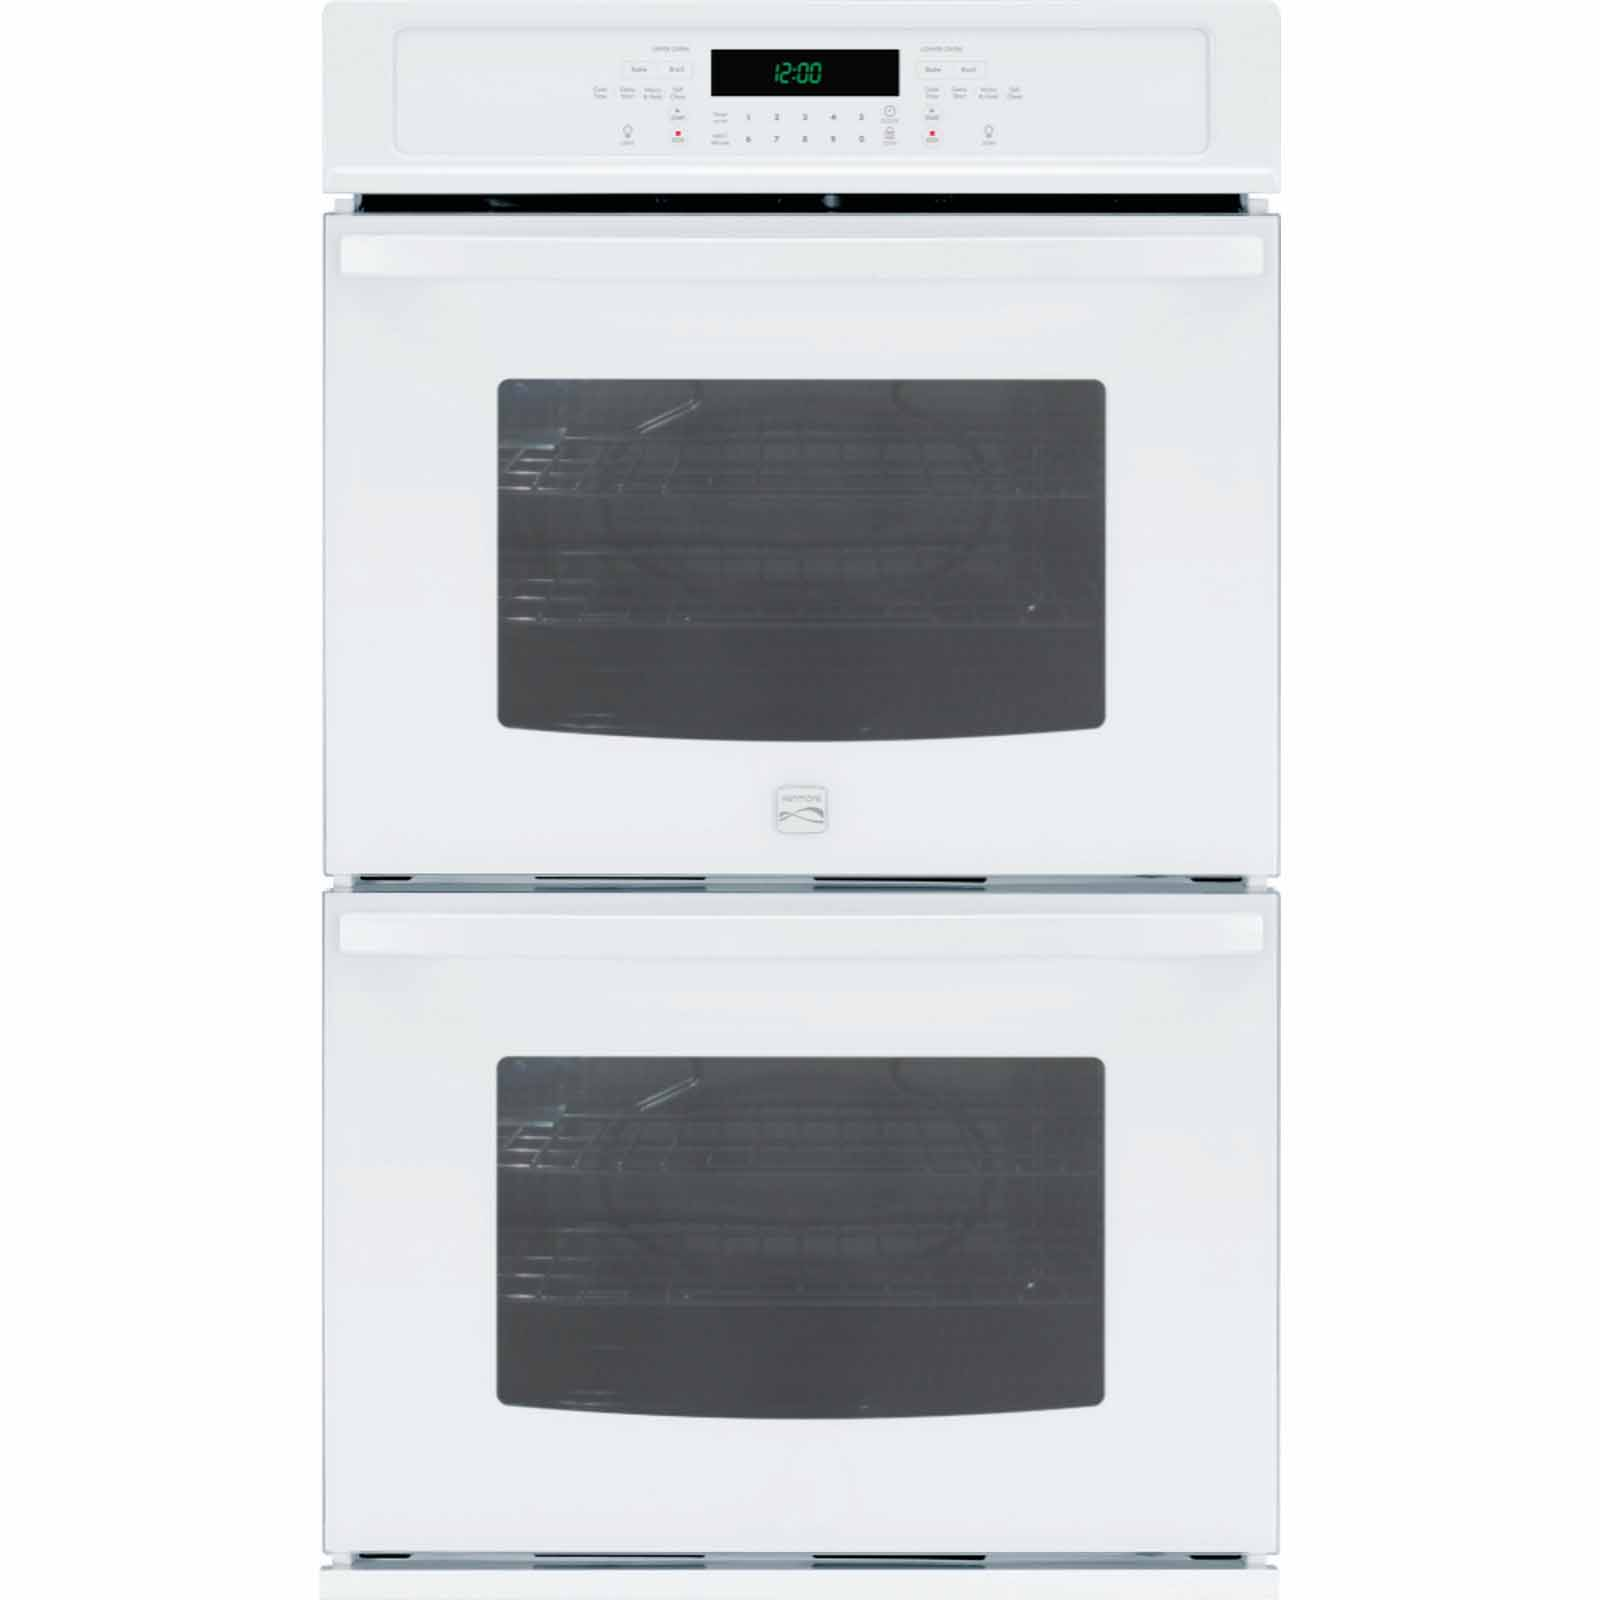 Kenmore 49442 30 Double Electric Wall Oven w/Select Clean® - White